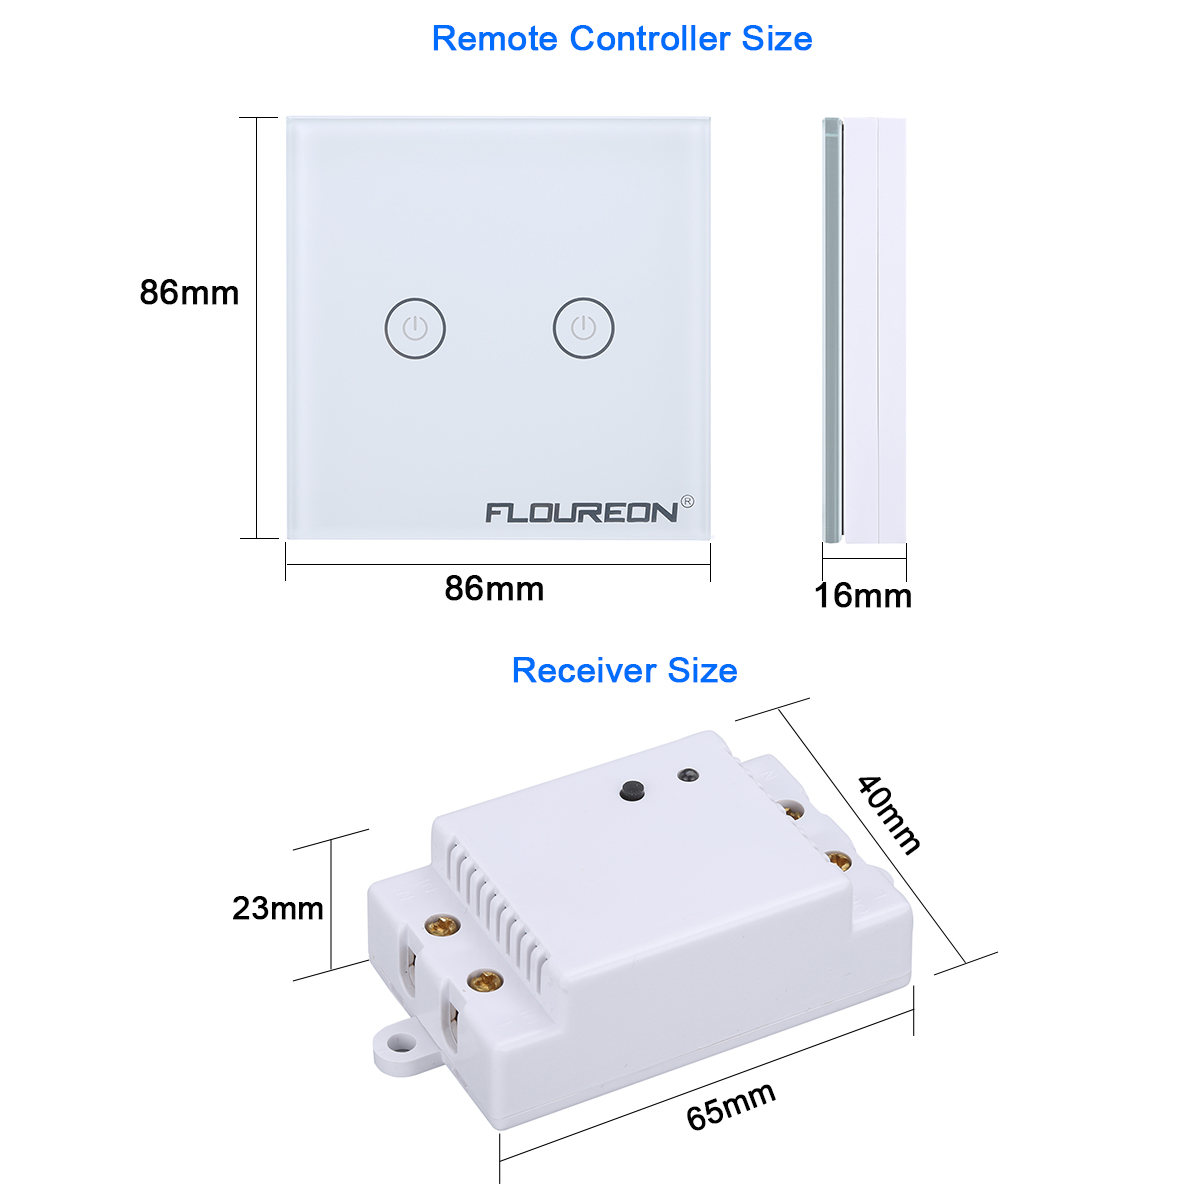 Us Plug 2 Gang 1 Way Touch Switch Wall Led Light Glass Panel Rf Single Wiring Floureon Wireless Remote Control 43392mhz Controller Portable White Tempered